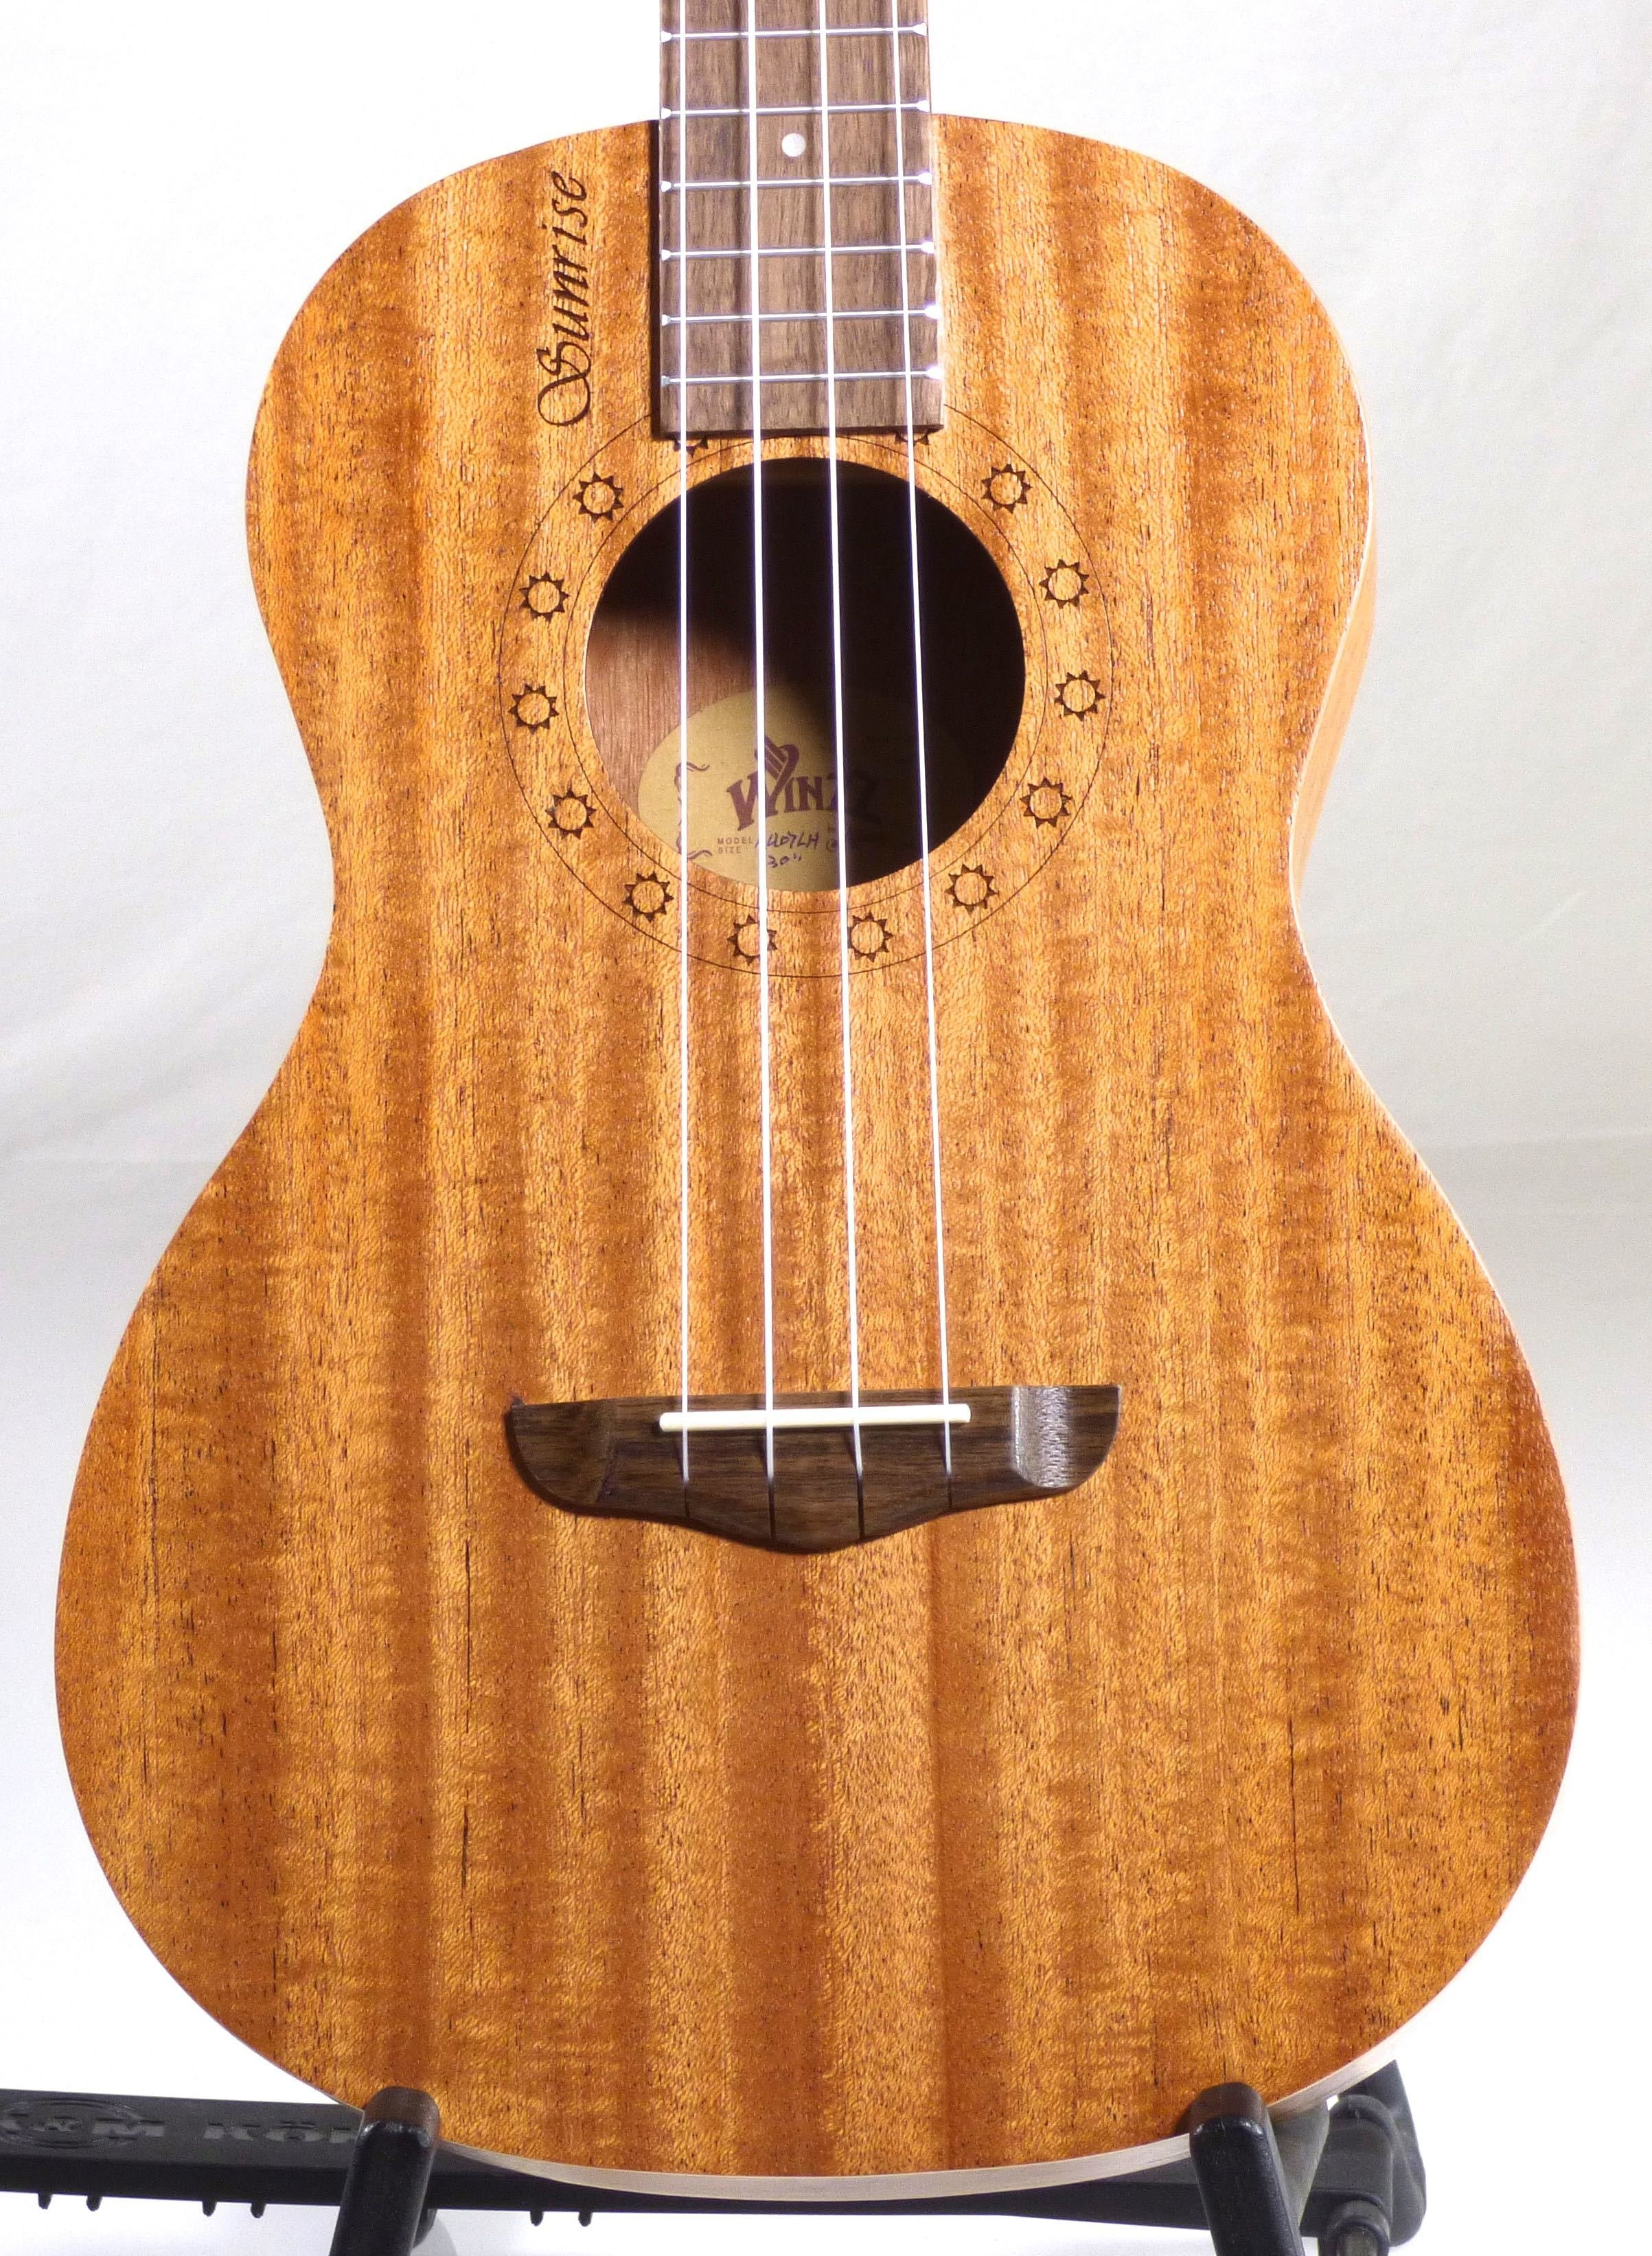 Sunrise Series Ukuleles - Available in Soprano, Concert, Tenor, and Baritone Sizes